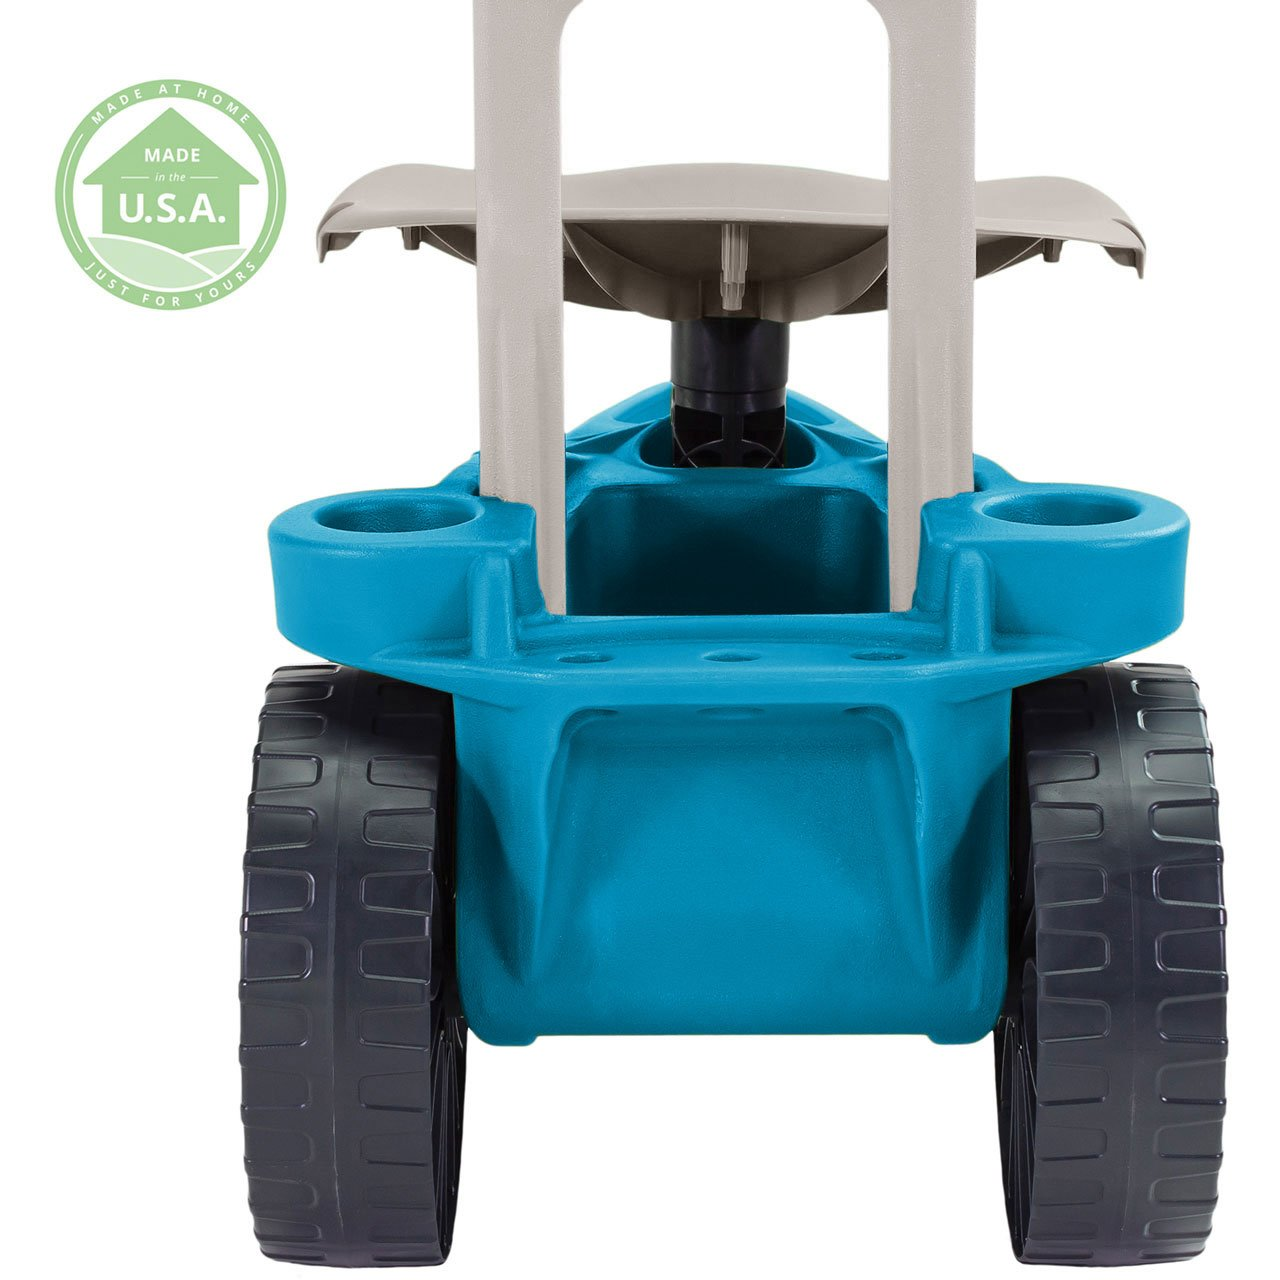 Easy Up Deluxe XTV Rolling Garden Seat and Scoot - Adjustable Swivel Seat, Heavy Duty Wheels, and Ergonomic Design To Assist Standing, Sitting, and Bending Over Made in the USA (Deluxe XTV Teal) by Vertex (Image #7)